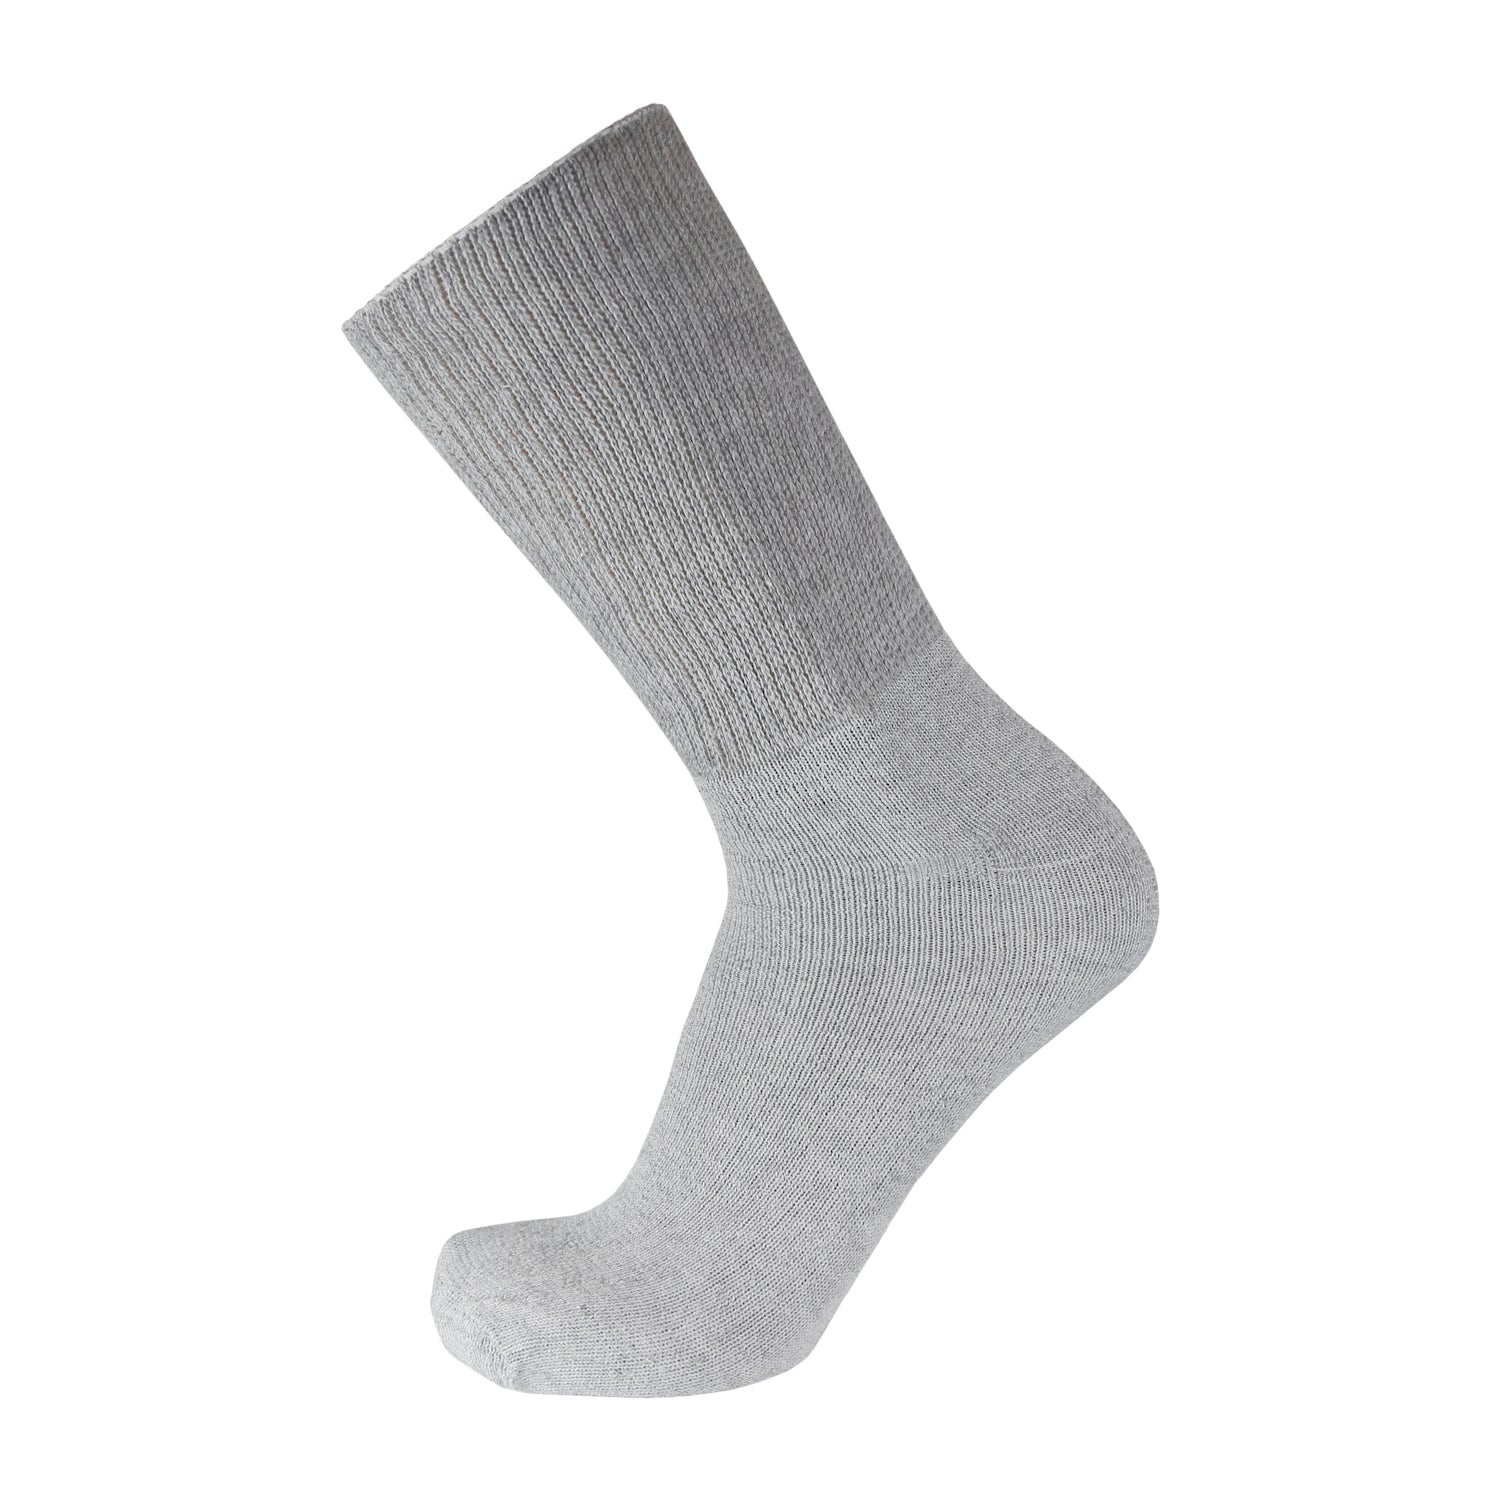 Gray Cotton Diabetic Crew Socks With Wide Nonbinding Top